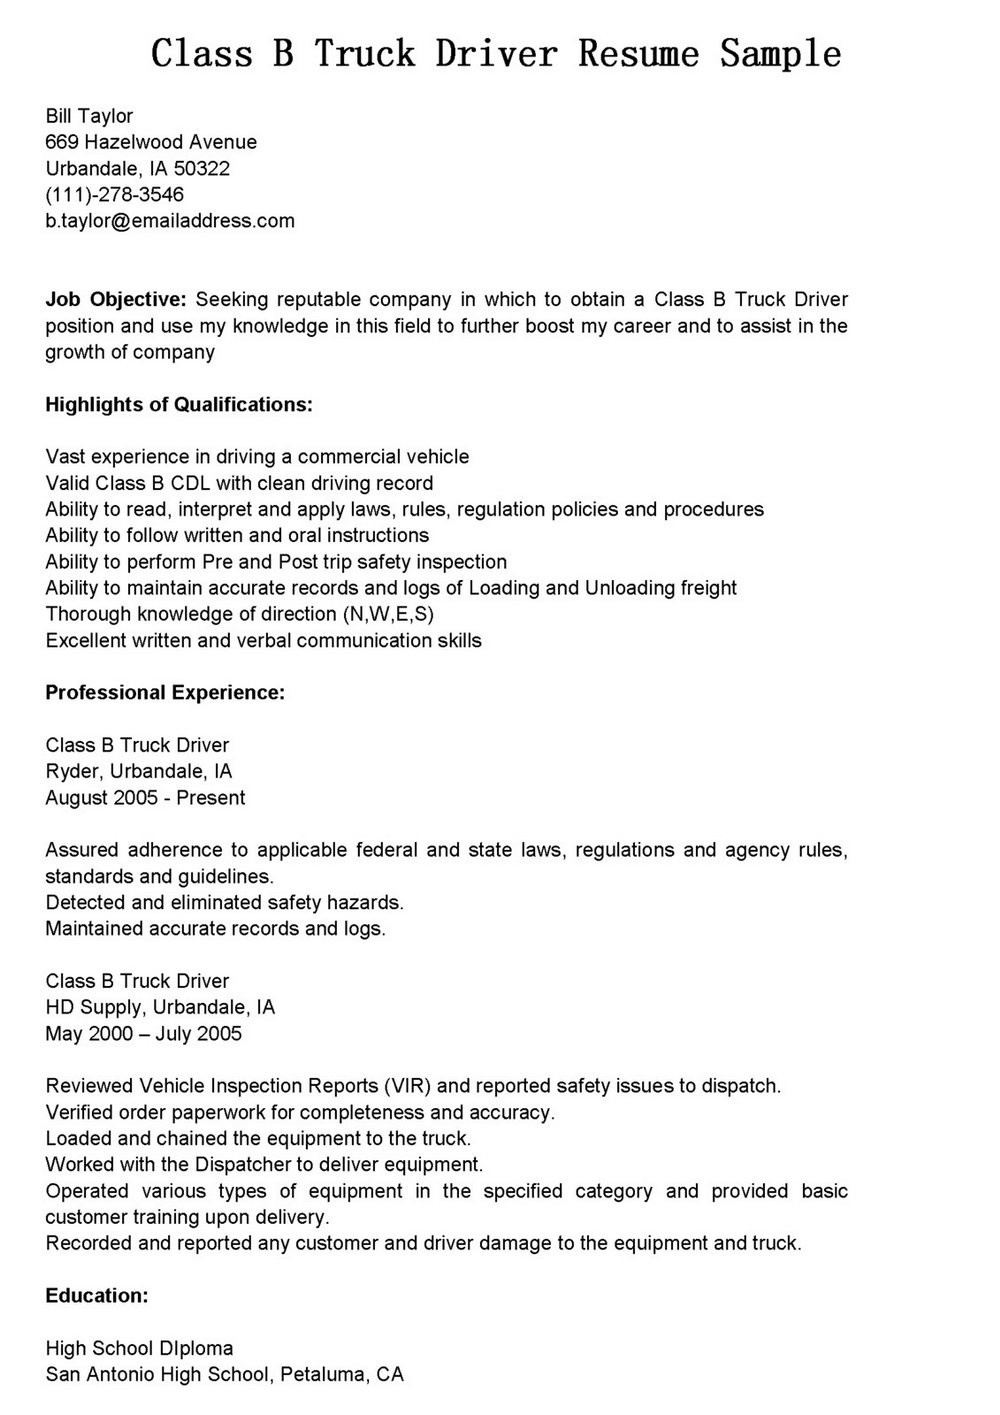 Truck Driver Resume Format